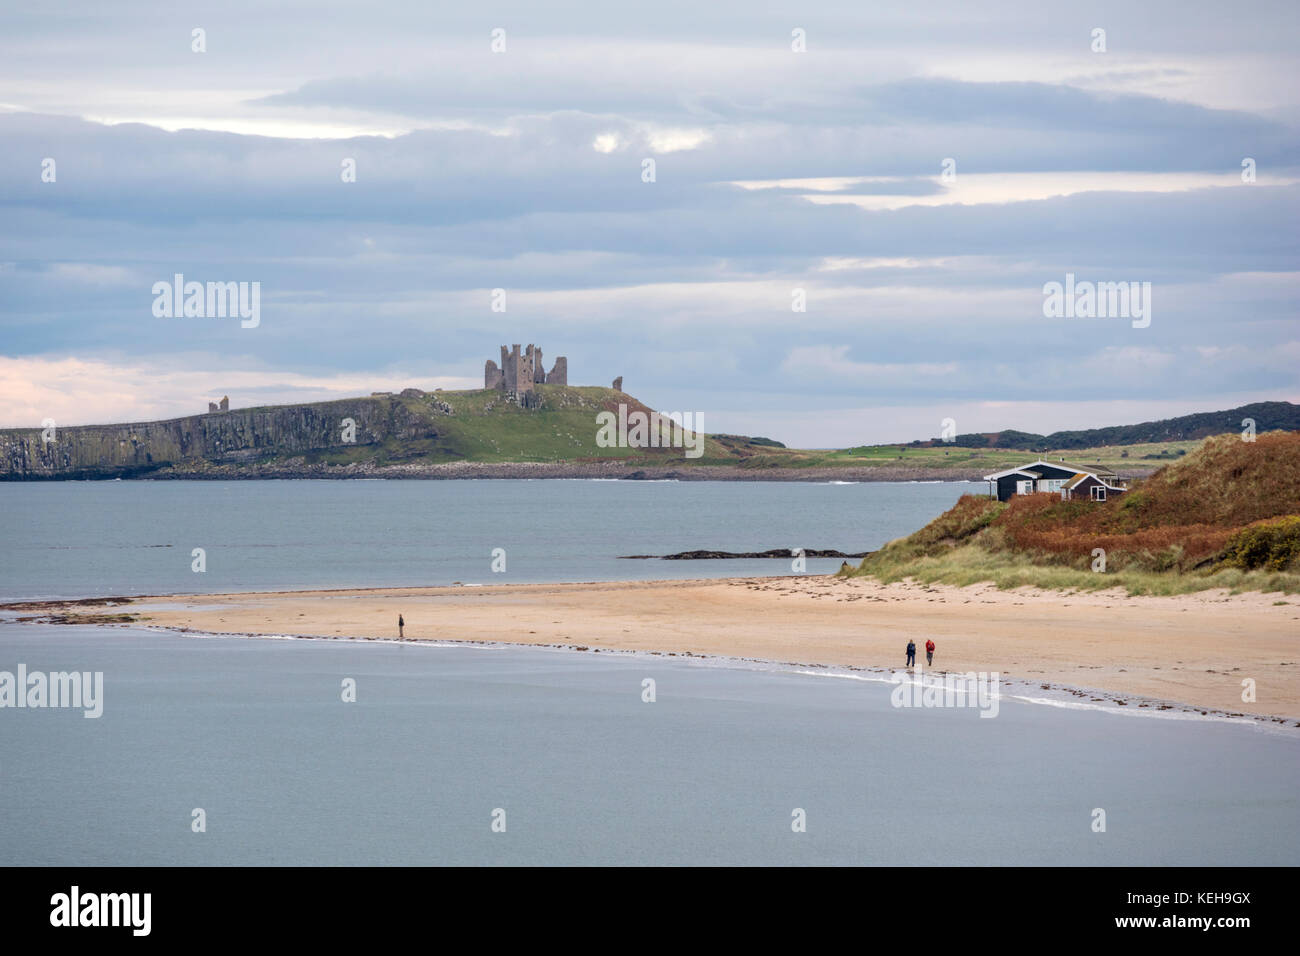 Looking across Embleton Bay towards Dunstanburgh Castle, Northumberland, England, UK Stock Photo